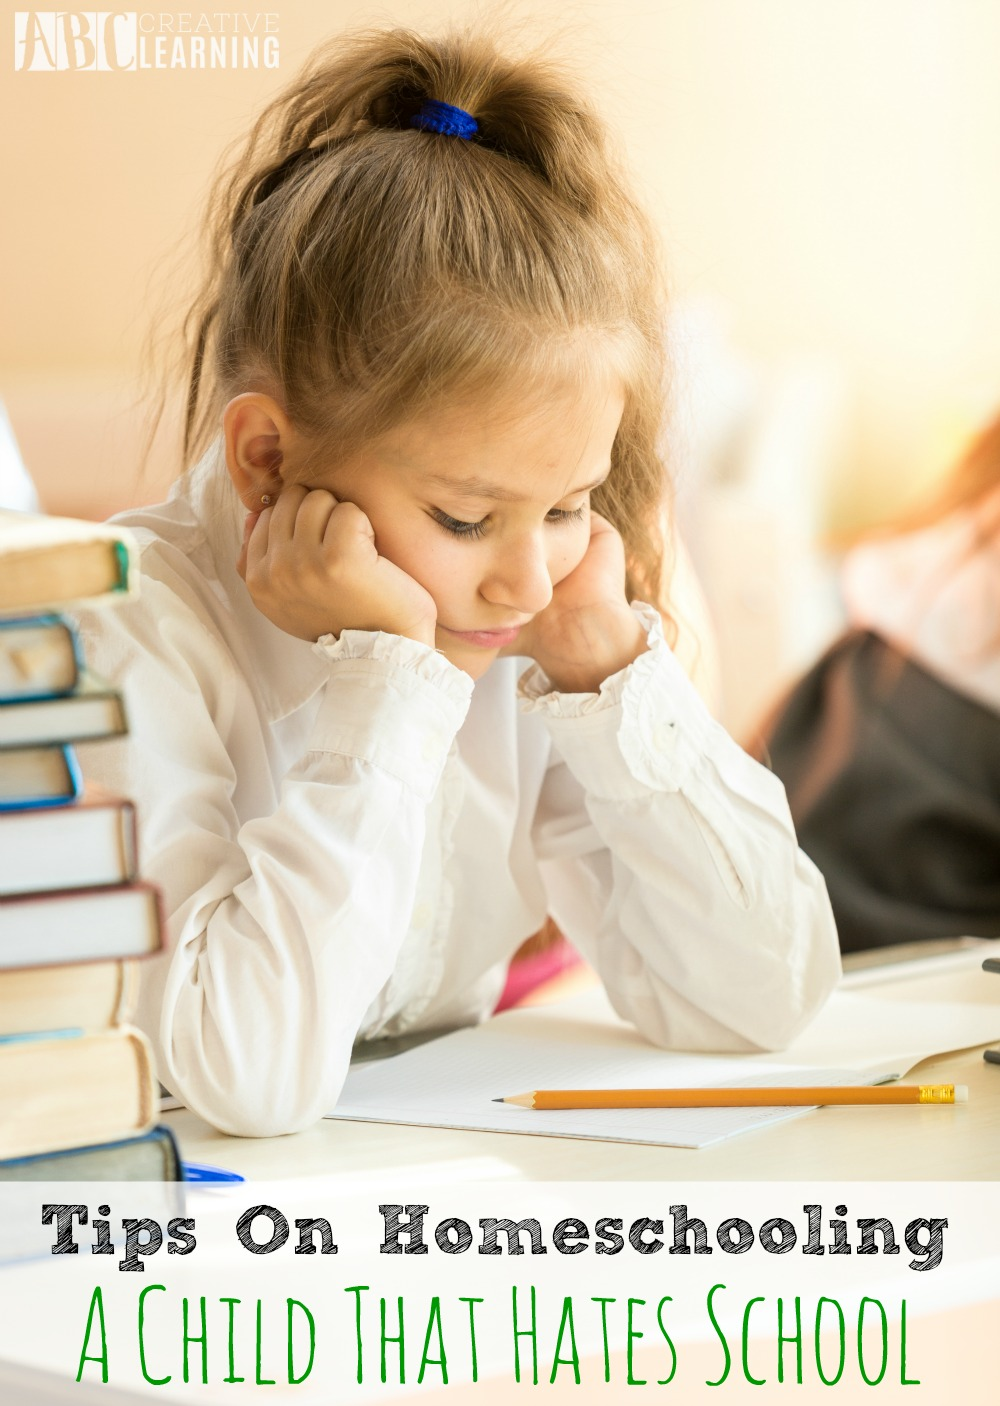 Tips On Homeschooling A Child That Hates School